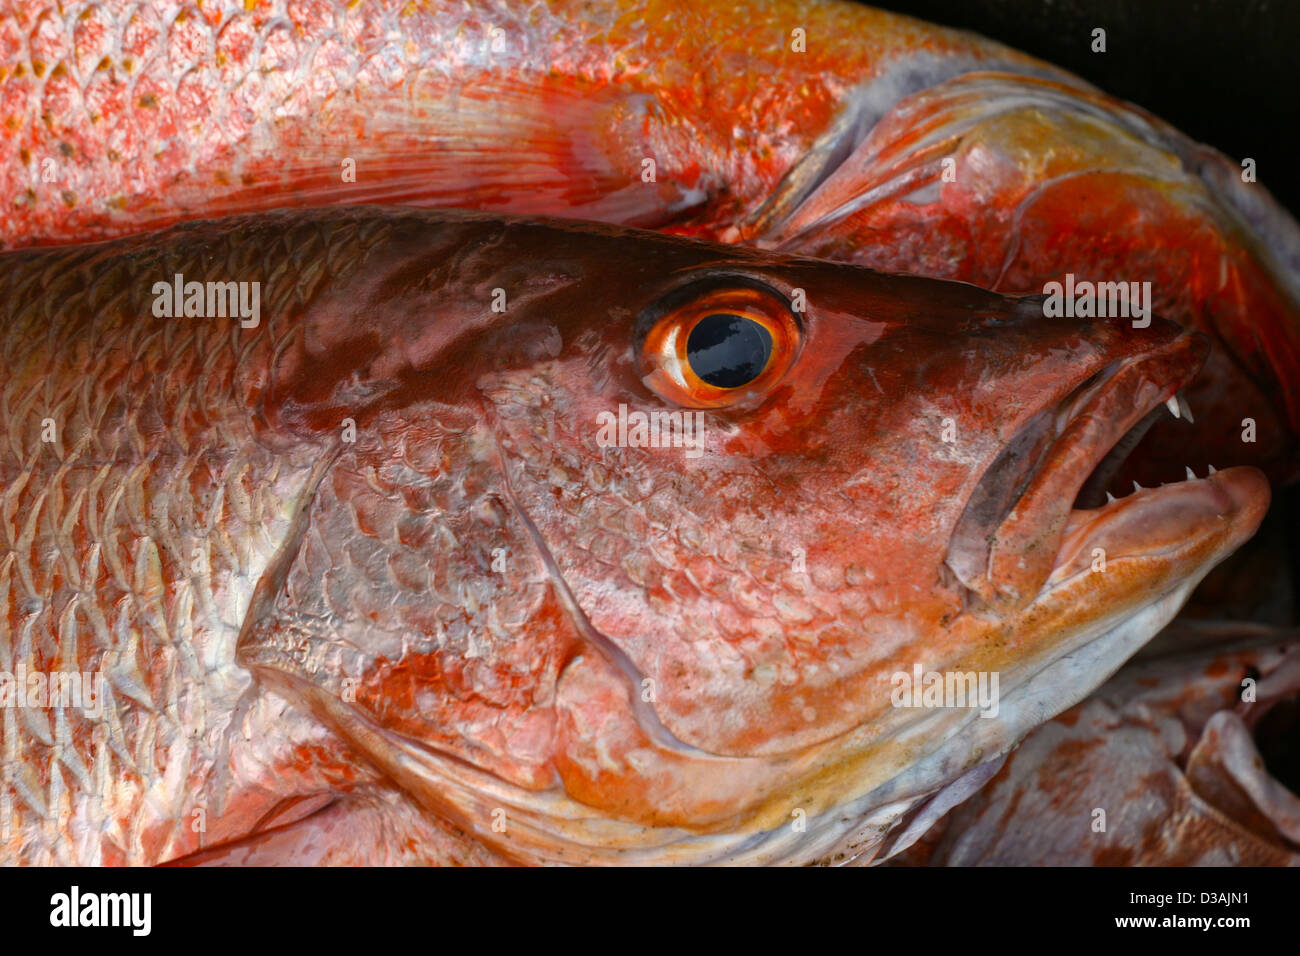 red snapper fish food good tasting beach market Mexico Stock Photo